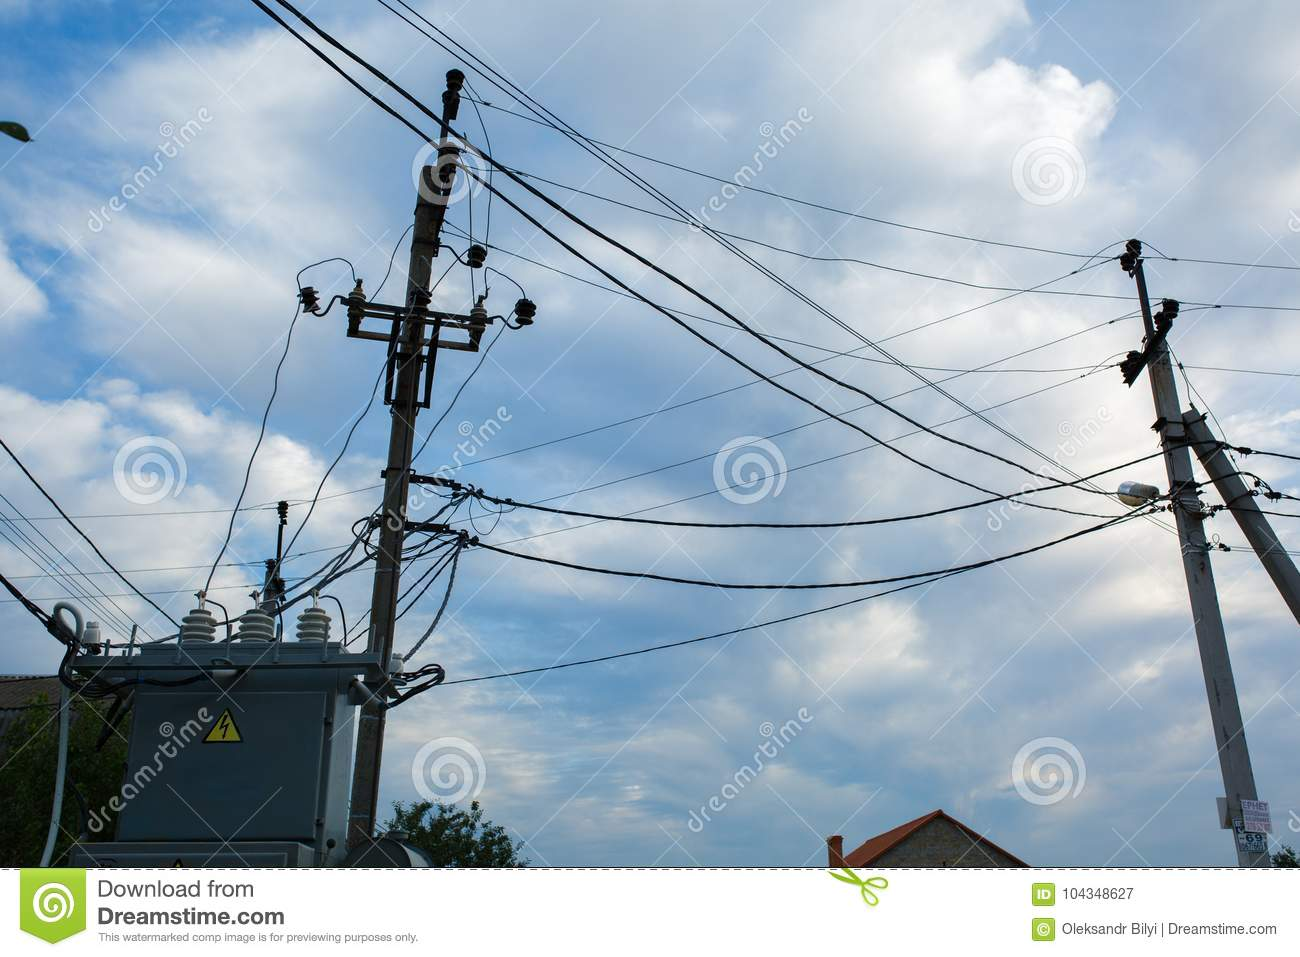 hight resolution of street electric current transformer with wires on the pole electrical distribution box